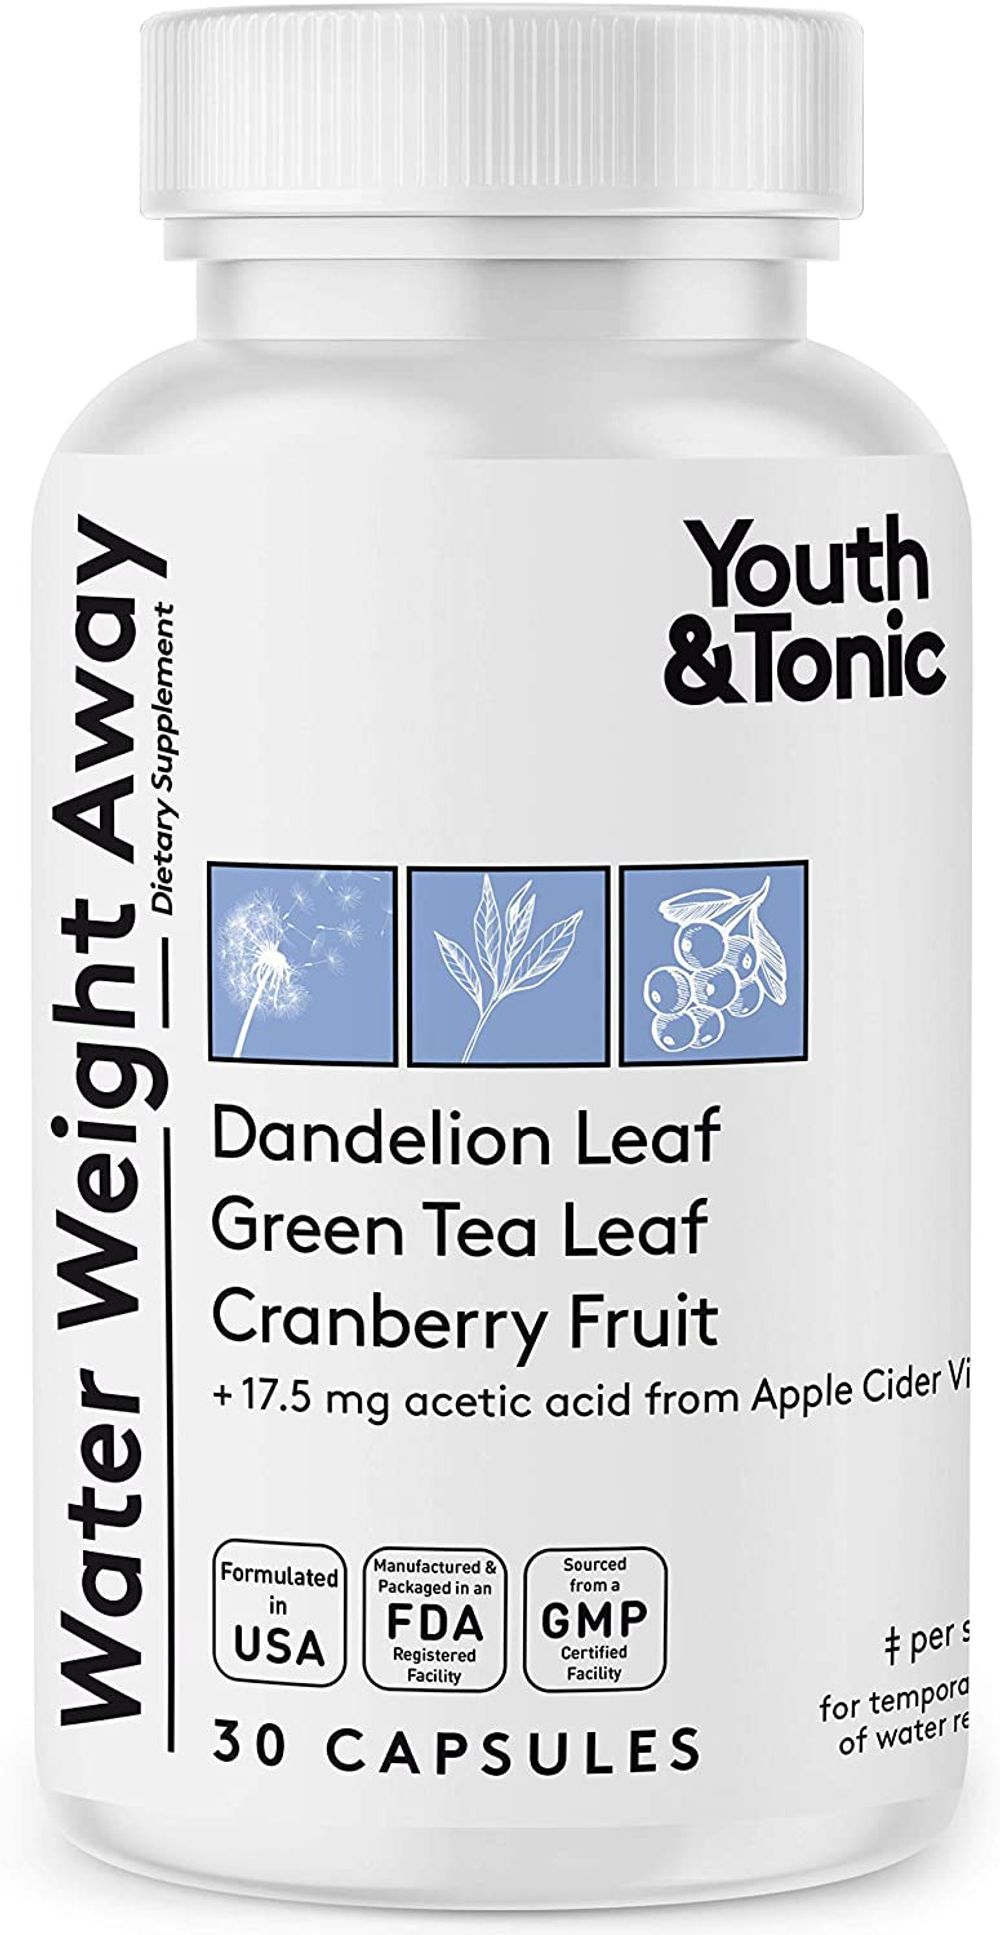 Water Weight Away Pills to Relief Ankle Swelling & Belly Bloat Reducing Waist Line   Natural Diuretic Supplement w/Dandelion for Water Retention Loss   Cleanse Detox Programs Support for Women & Men